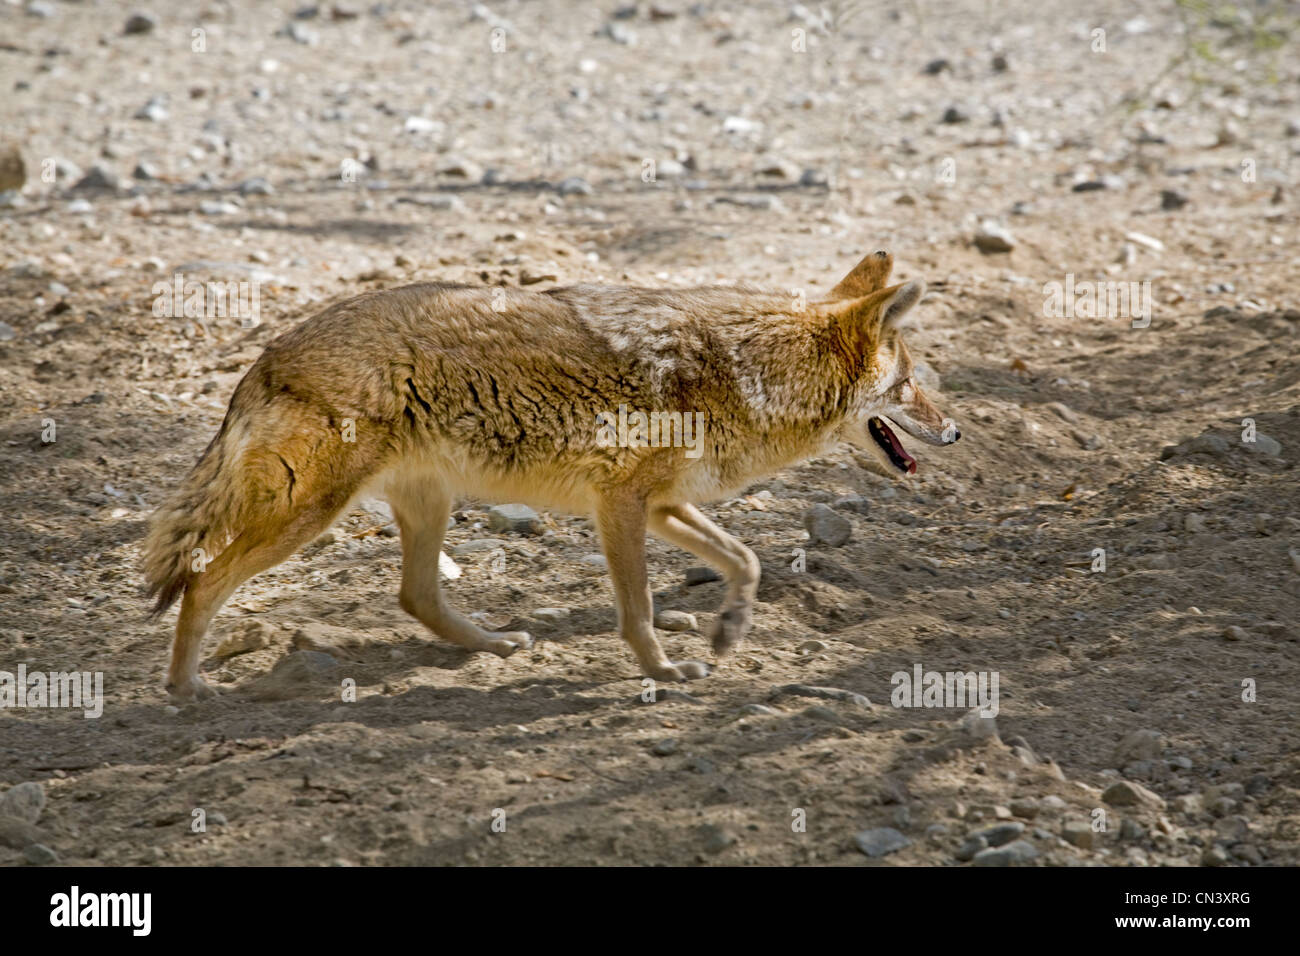 A coyote, Canis latrans, searches the Mojave desert for food in southern California - Stock Image